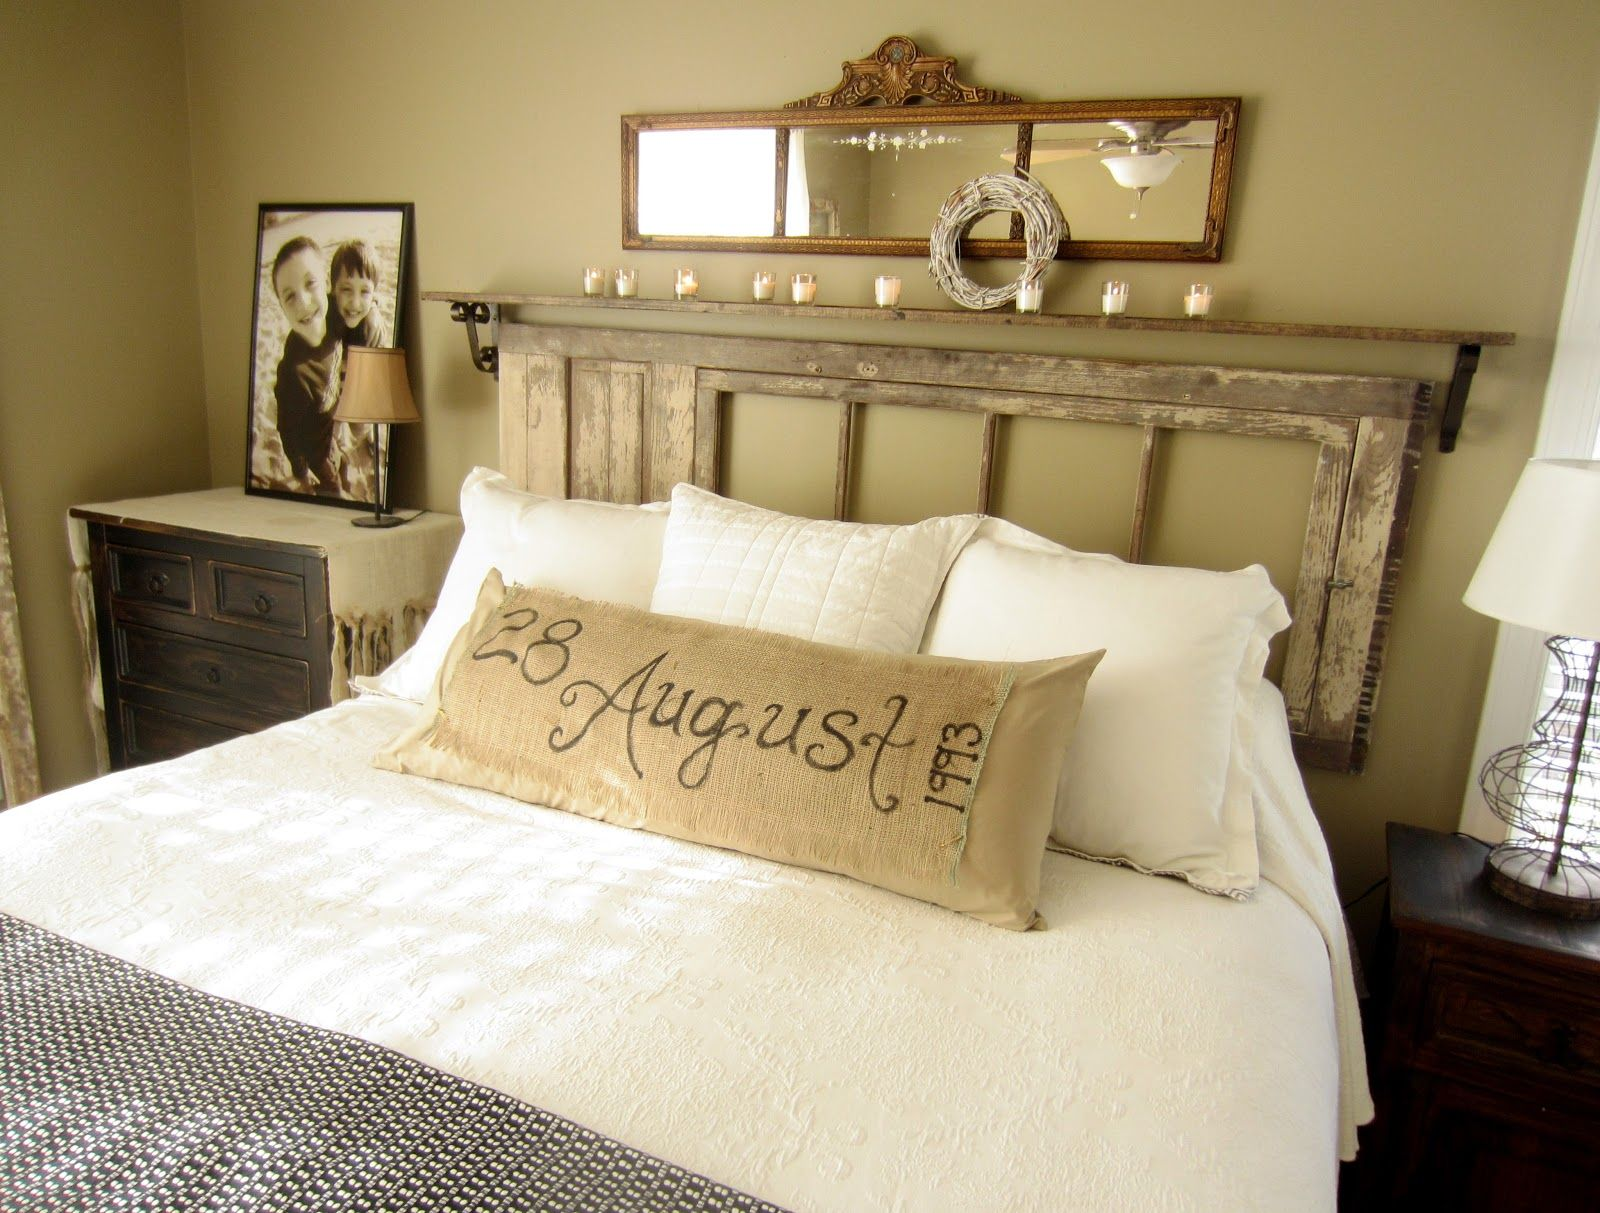 I Love This Burlap Pillow! How Cool  Will Attempt To Make This One! Burlap  PillowsBurlap HeadboardHeadboard IdeasBurlap Bedroom DecorShelf ...